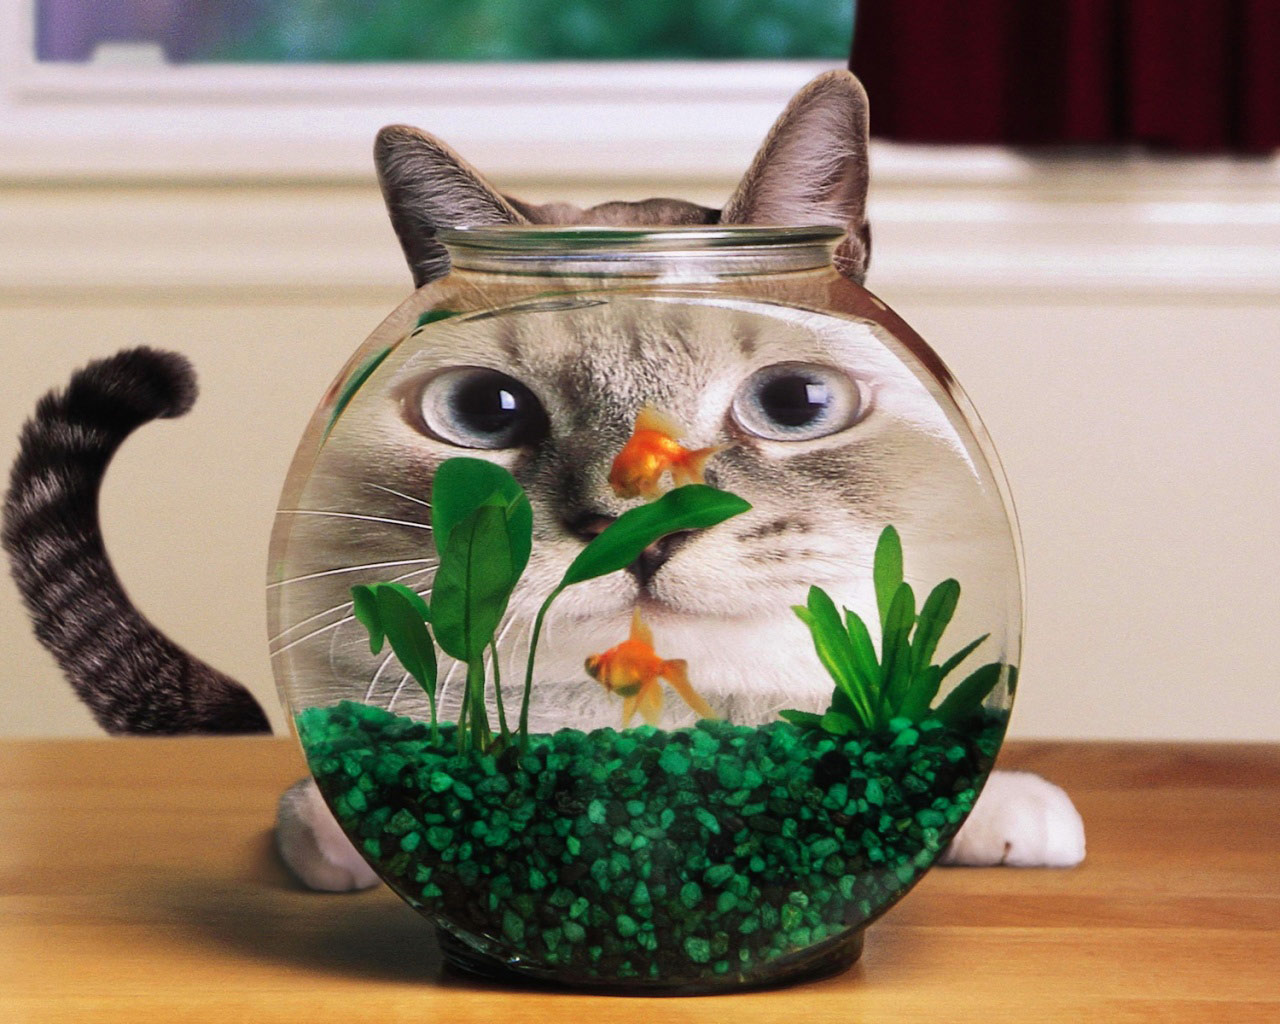 Cat and Fish Funny || Top Wallpapers Download .blogspot.com